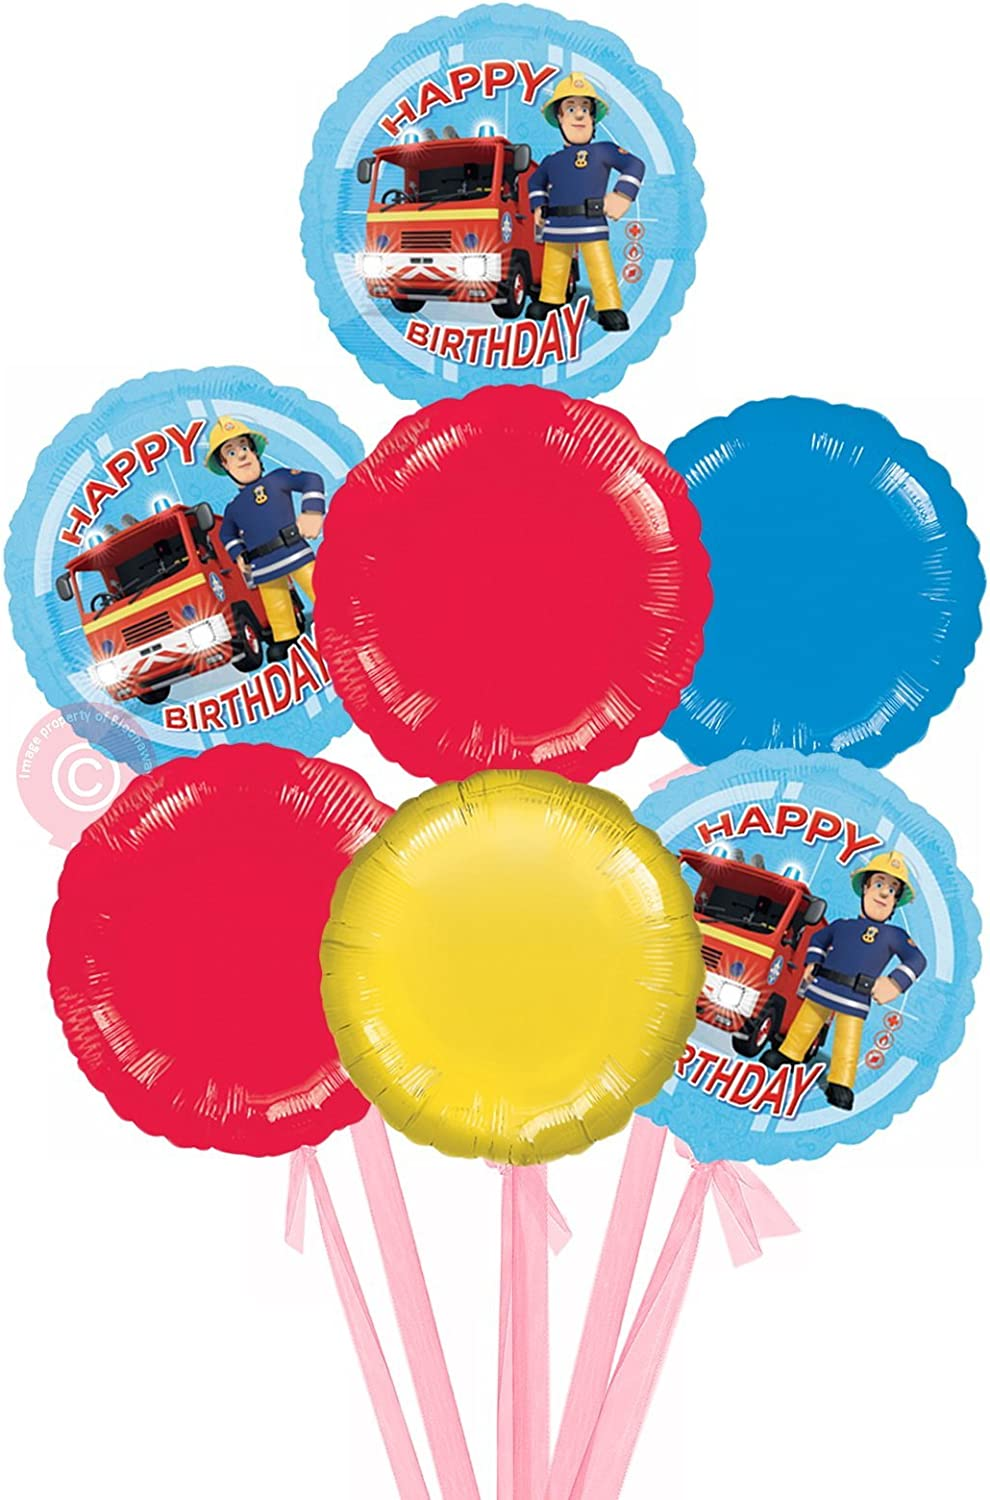 Fireman Sam Happy Birthday  Inflated Birthday Helium Balloon Delivered in a Box  Bigger Bouquet  7 Balloons  Bloonaway